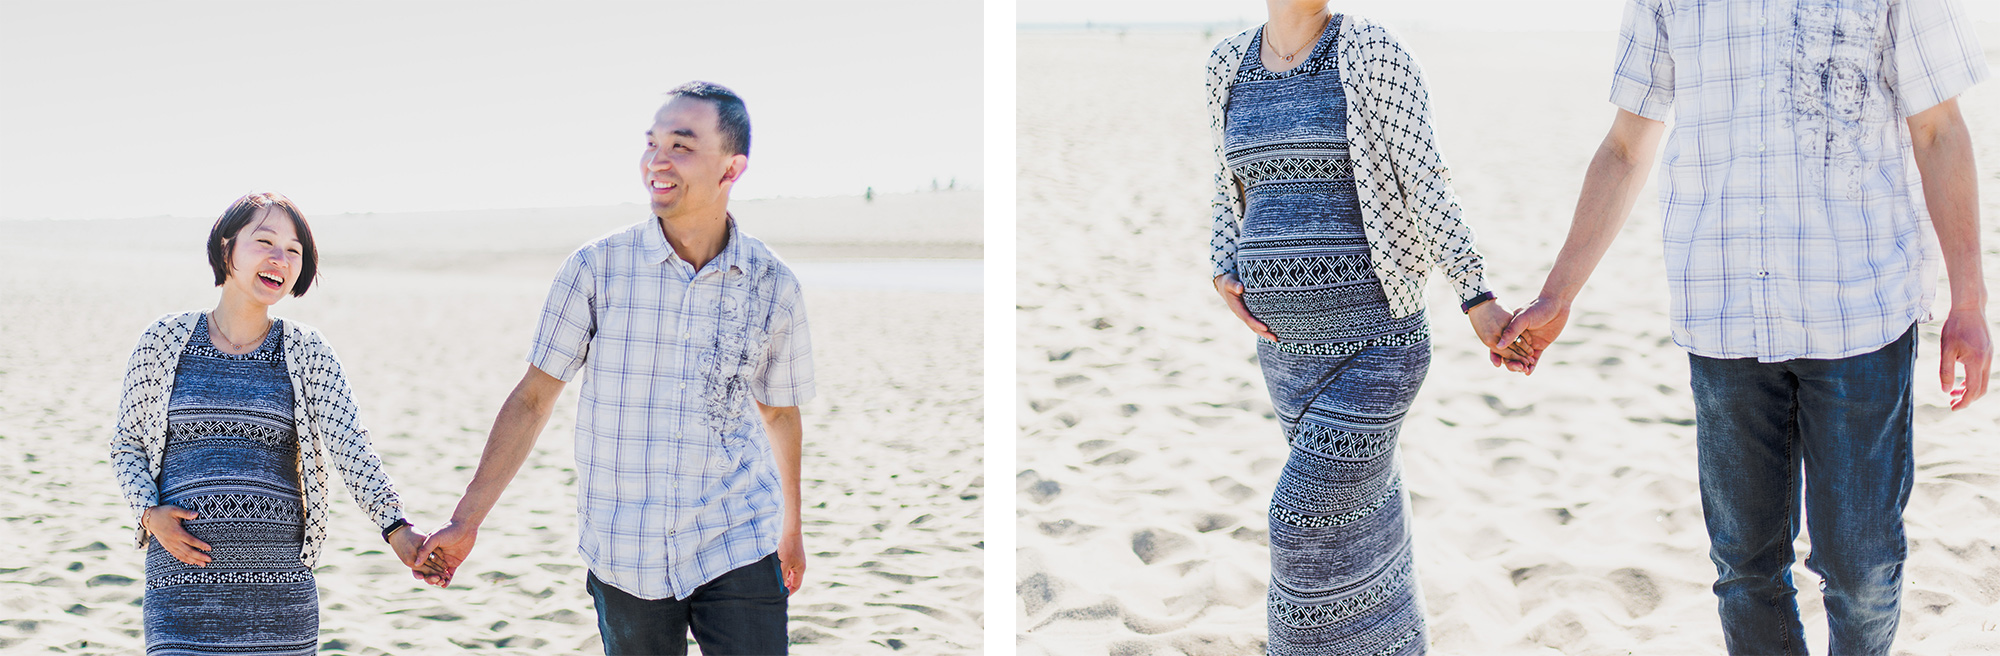 Plum Island Maternity Portrait Photographer | Stephen Grant Photography